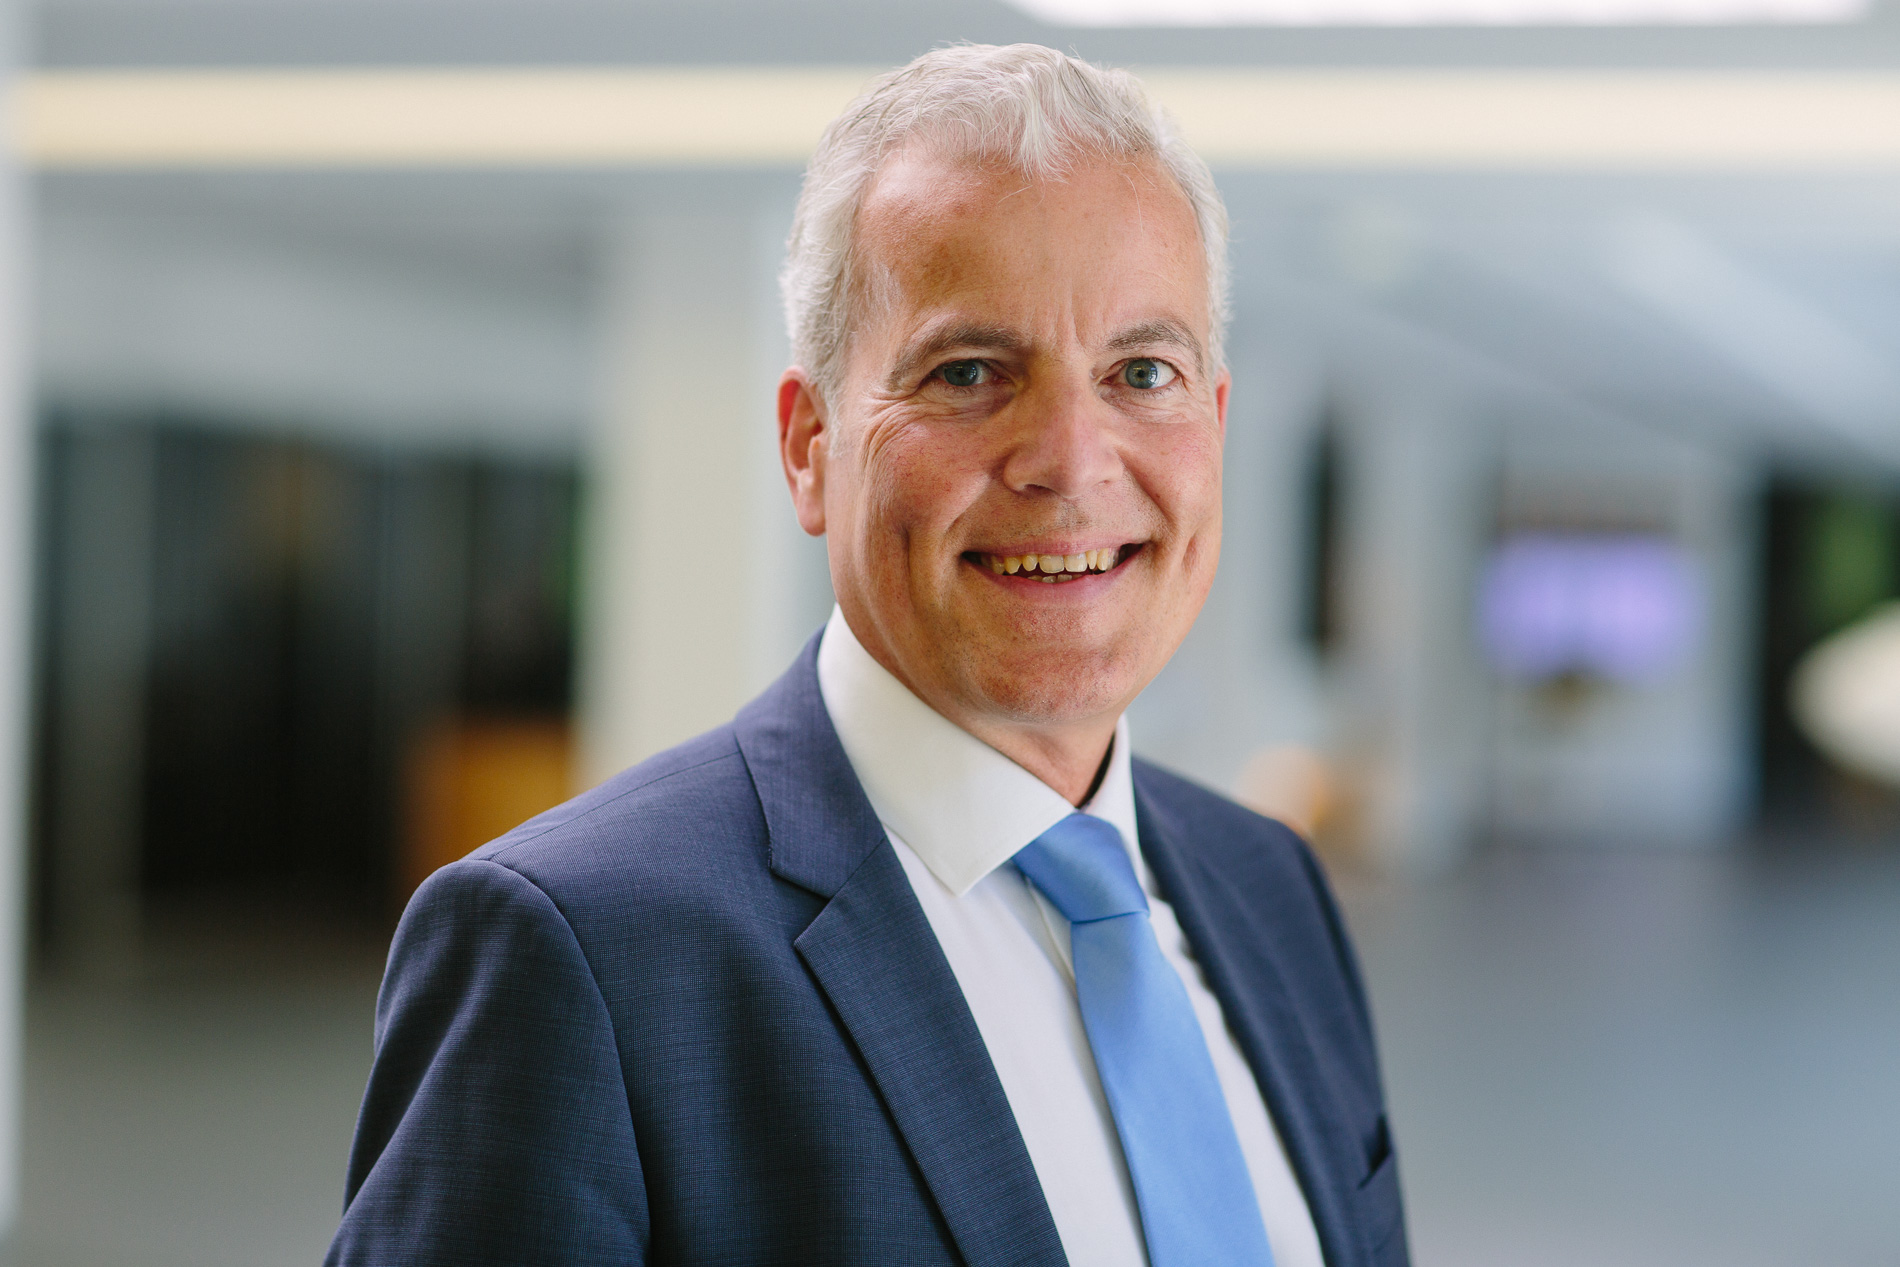 Interview with Dr. Joachim Böhler - Head of Market Research / Strategic Brand Management at Union Investment